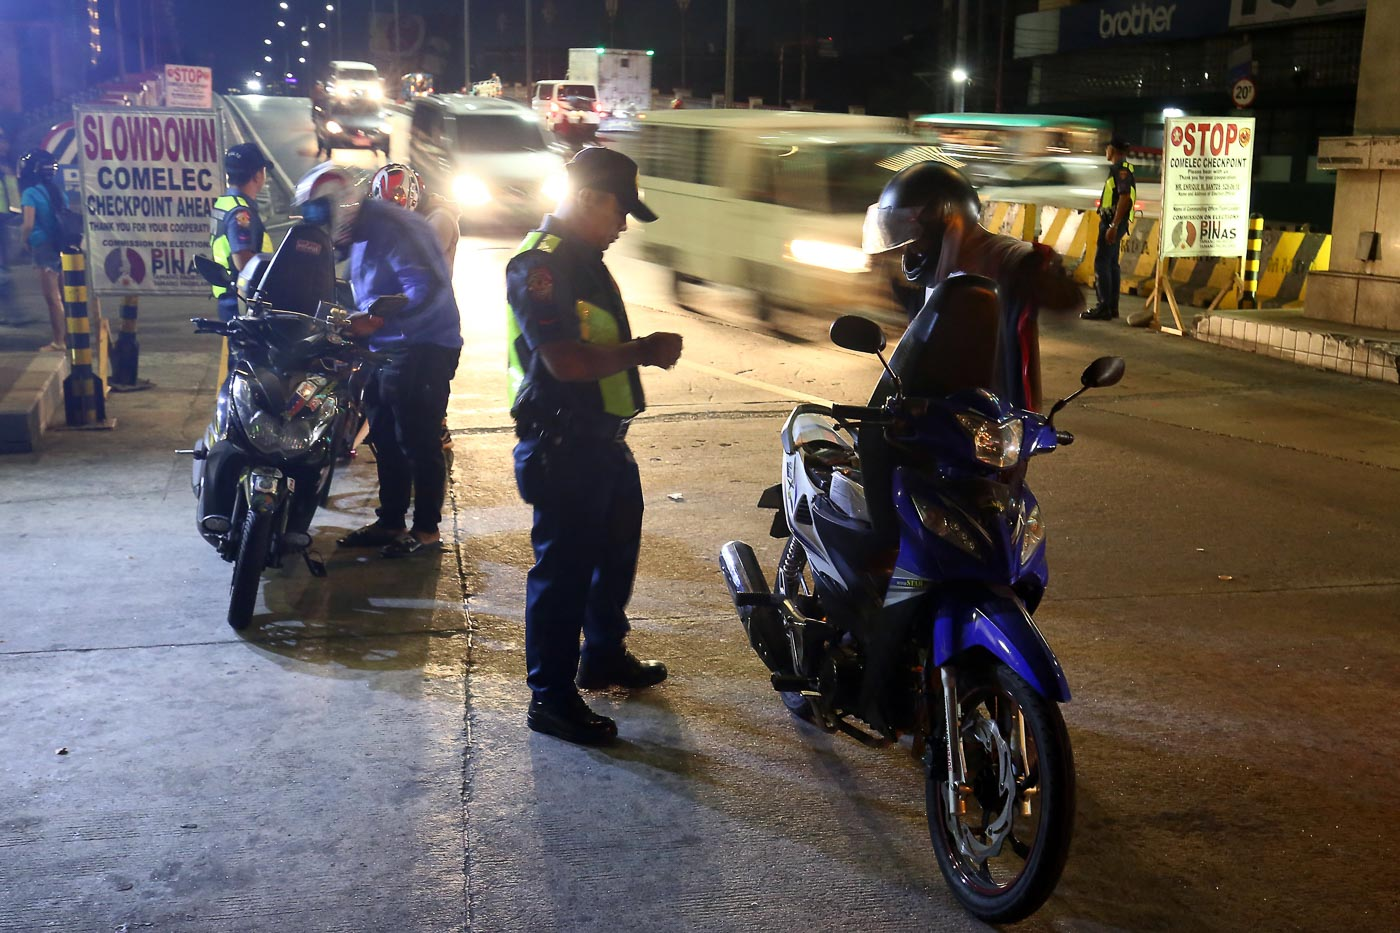 CHECKPOINTS. Policemen implement Comelecu2019s gun ban check in Binondo, Manila, as the National Capital Region Police Office also deploys 14,000 cops and set up more checkpoints in Metro Manila. Photo by Ben Nabong/Rappler